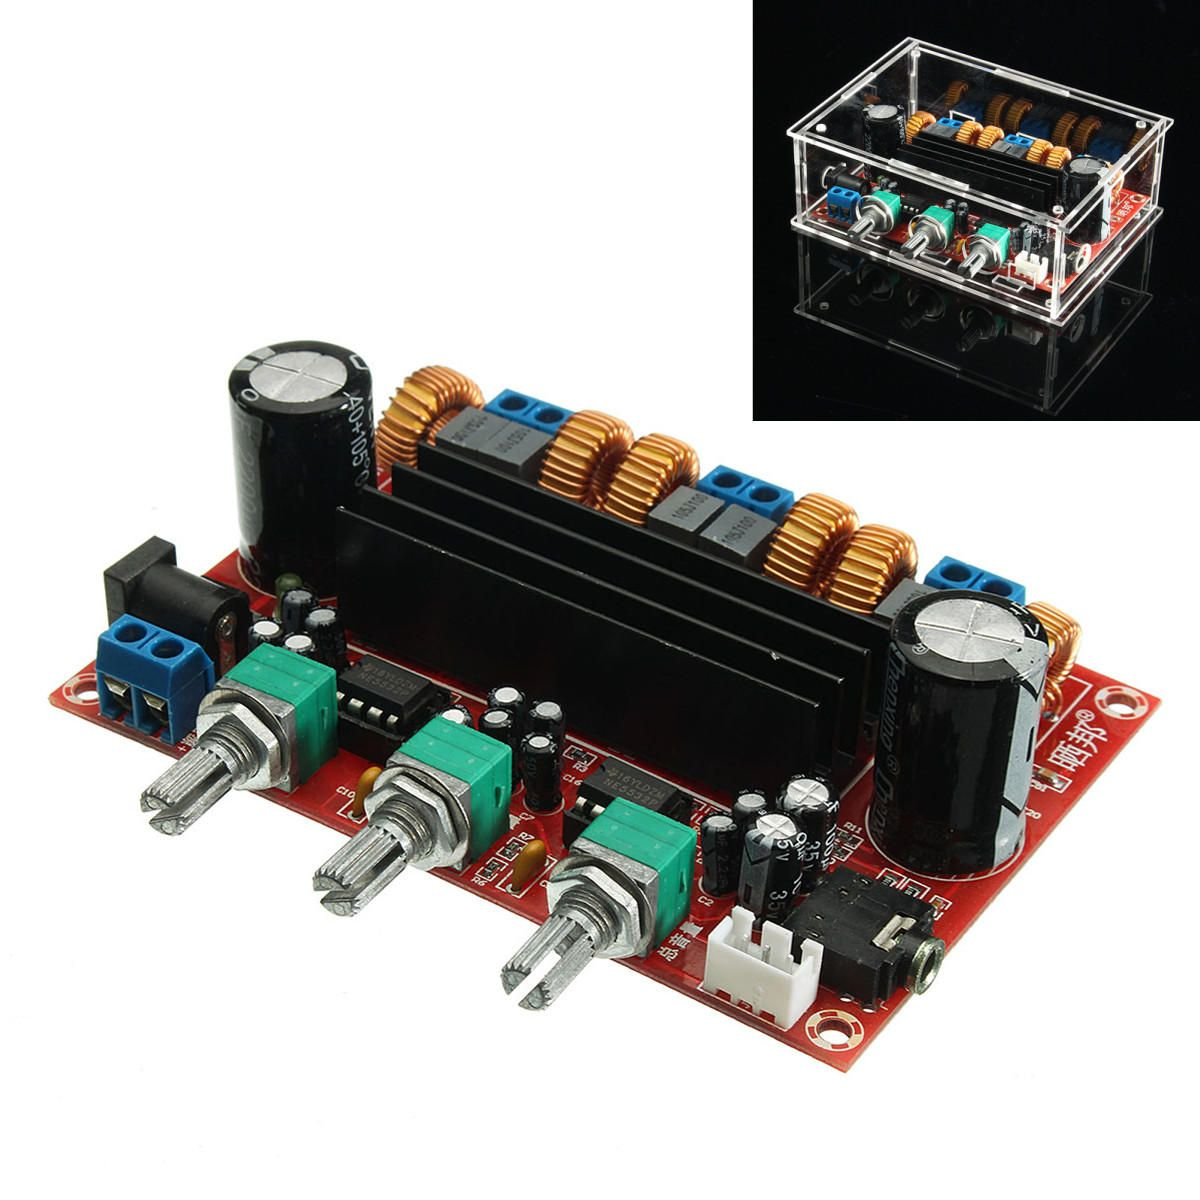 Amplifier For Tda7496sa Electronics T Tda7496 2x5 Watts Stereo Class Ab Audio Circuit Design Tpa3116d2 50wx2 100w 21 Channel Digital Subwoofer Power Board Storage Cool